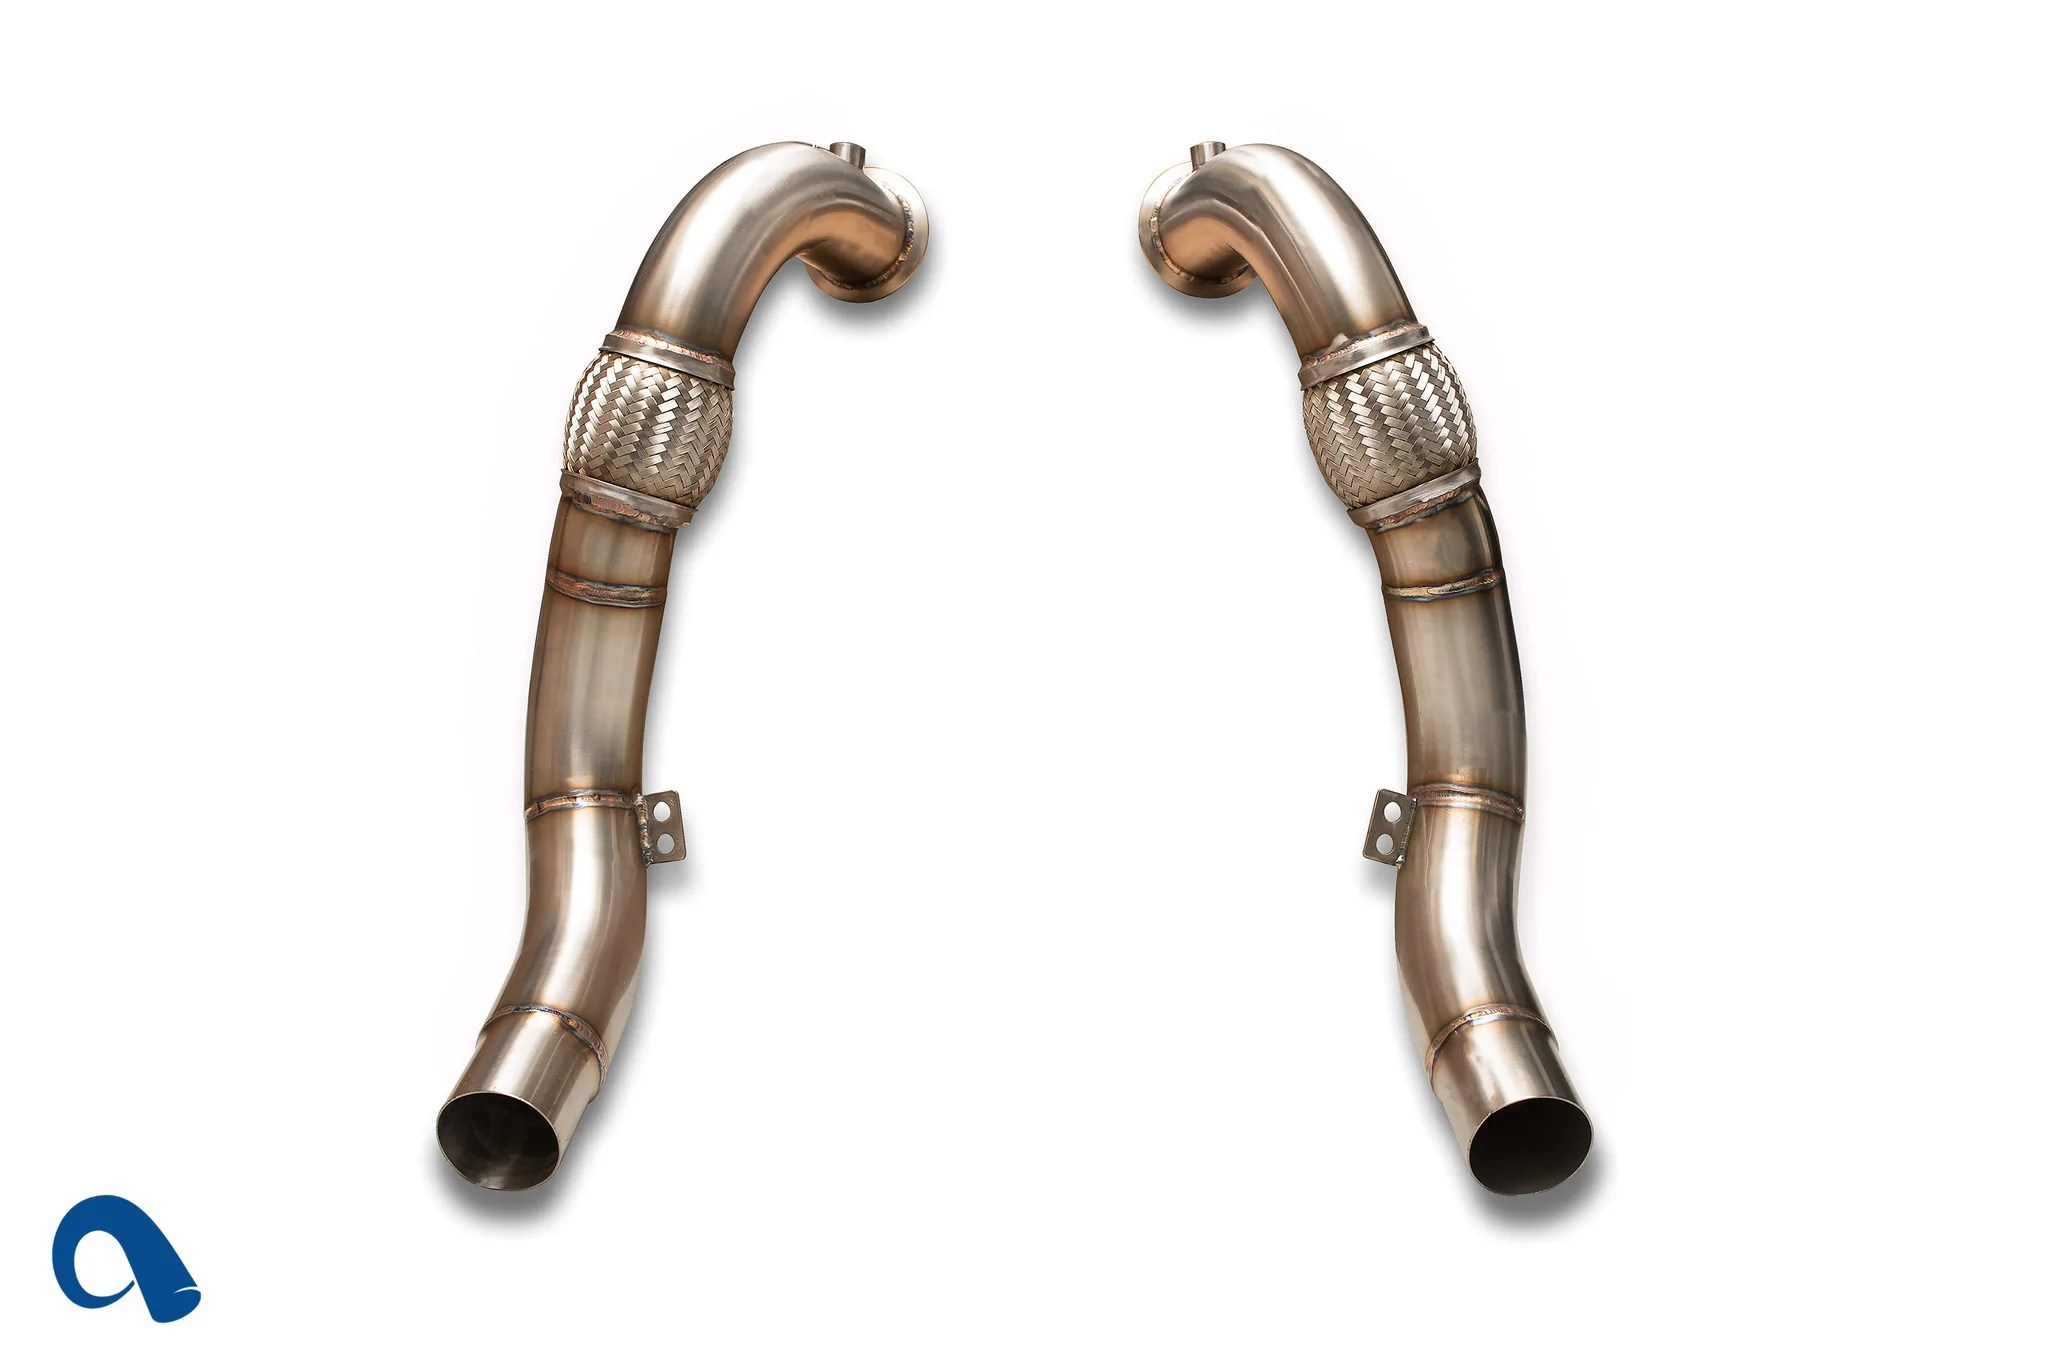 bmw n63 downpipes for twin turbo v8 bmw x5 and x6 f10 550i by bmw active autowerke [ 2048 x 1367 Pixel ]